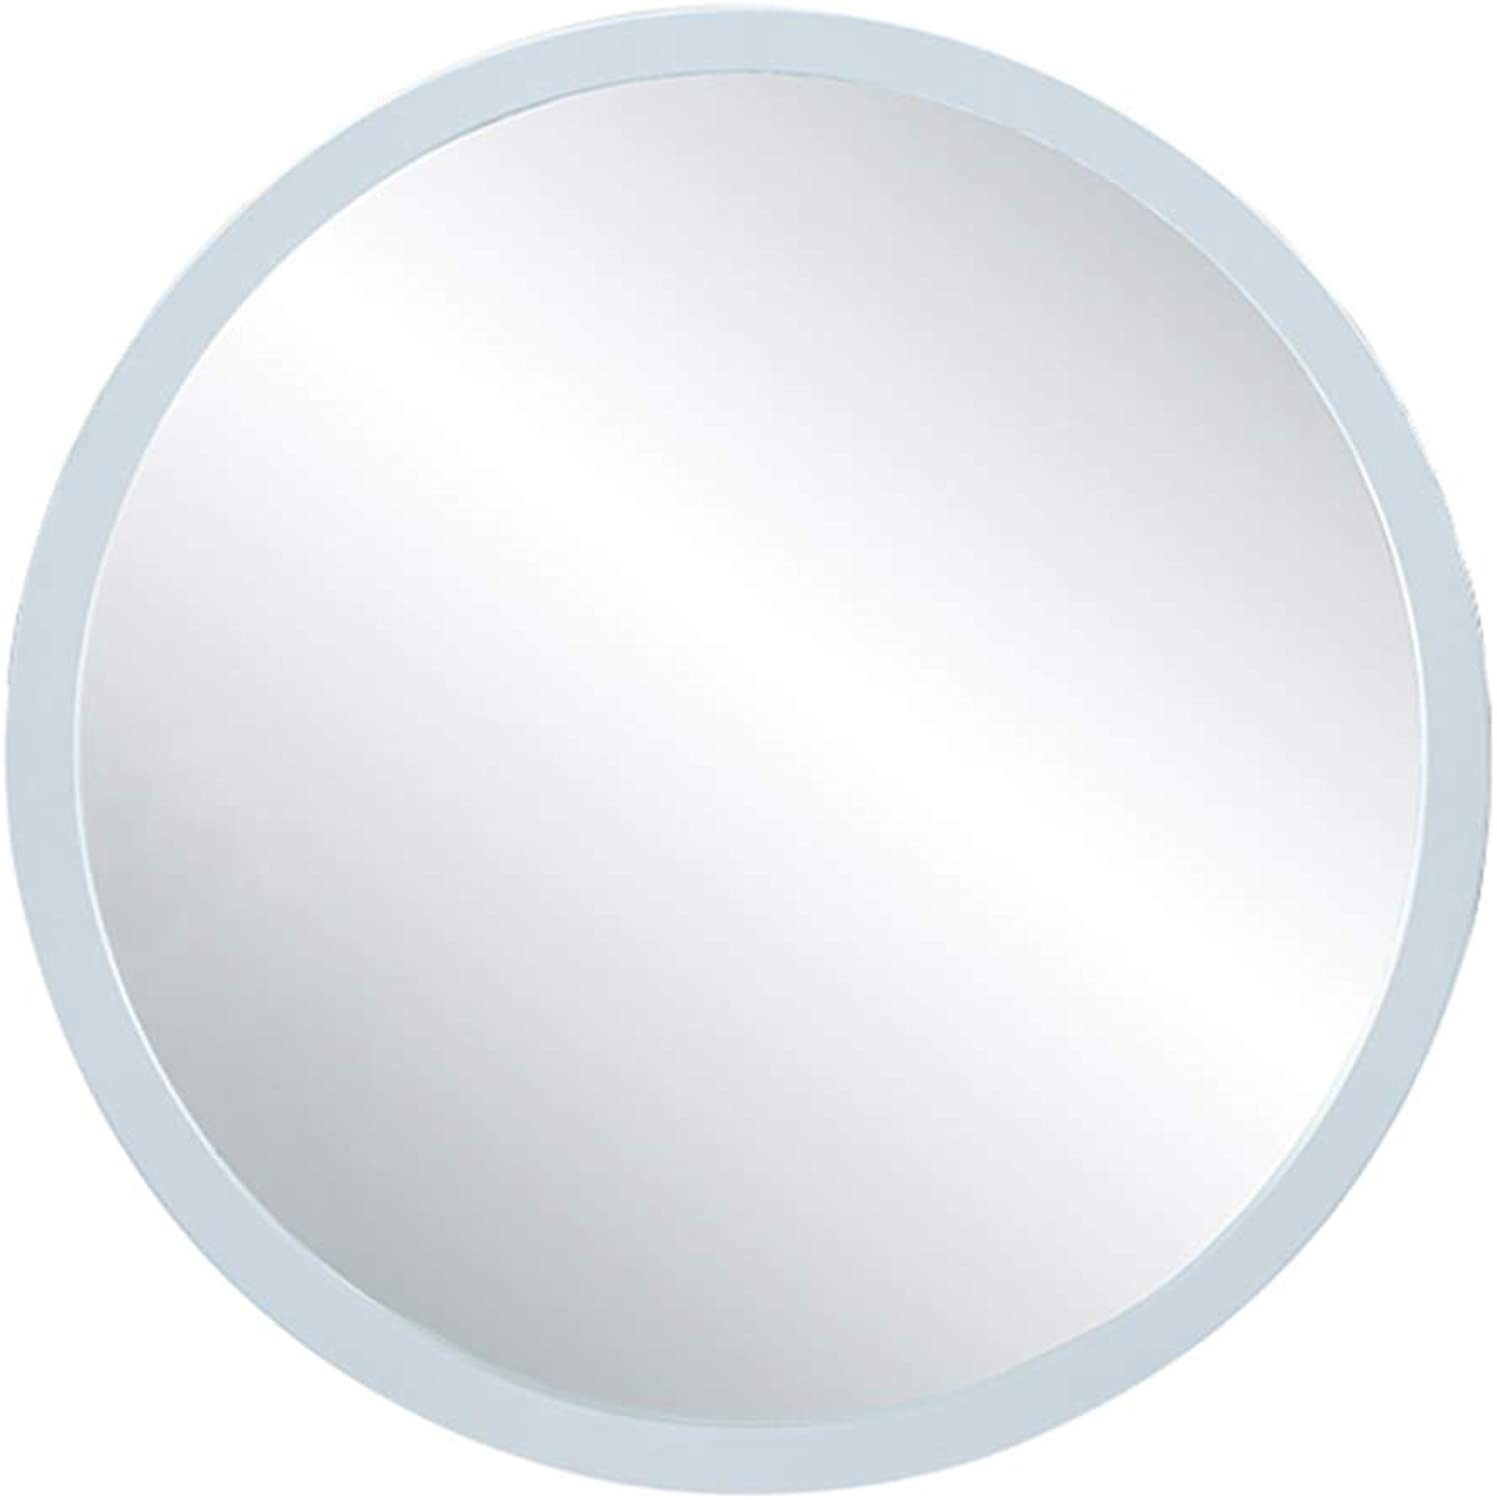 Bathroom Makeup Mirror for Wall White Metal Frame 30CM(12Inch) Round Vanity Mirror Shave Shower Decorative Mirror for Entry Dining Room Bedroom